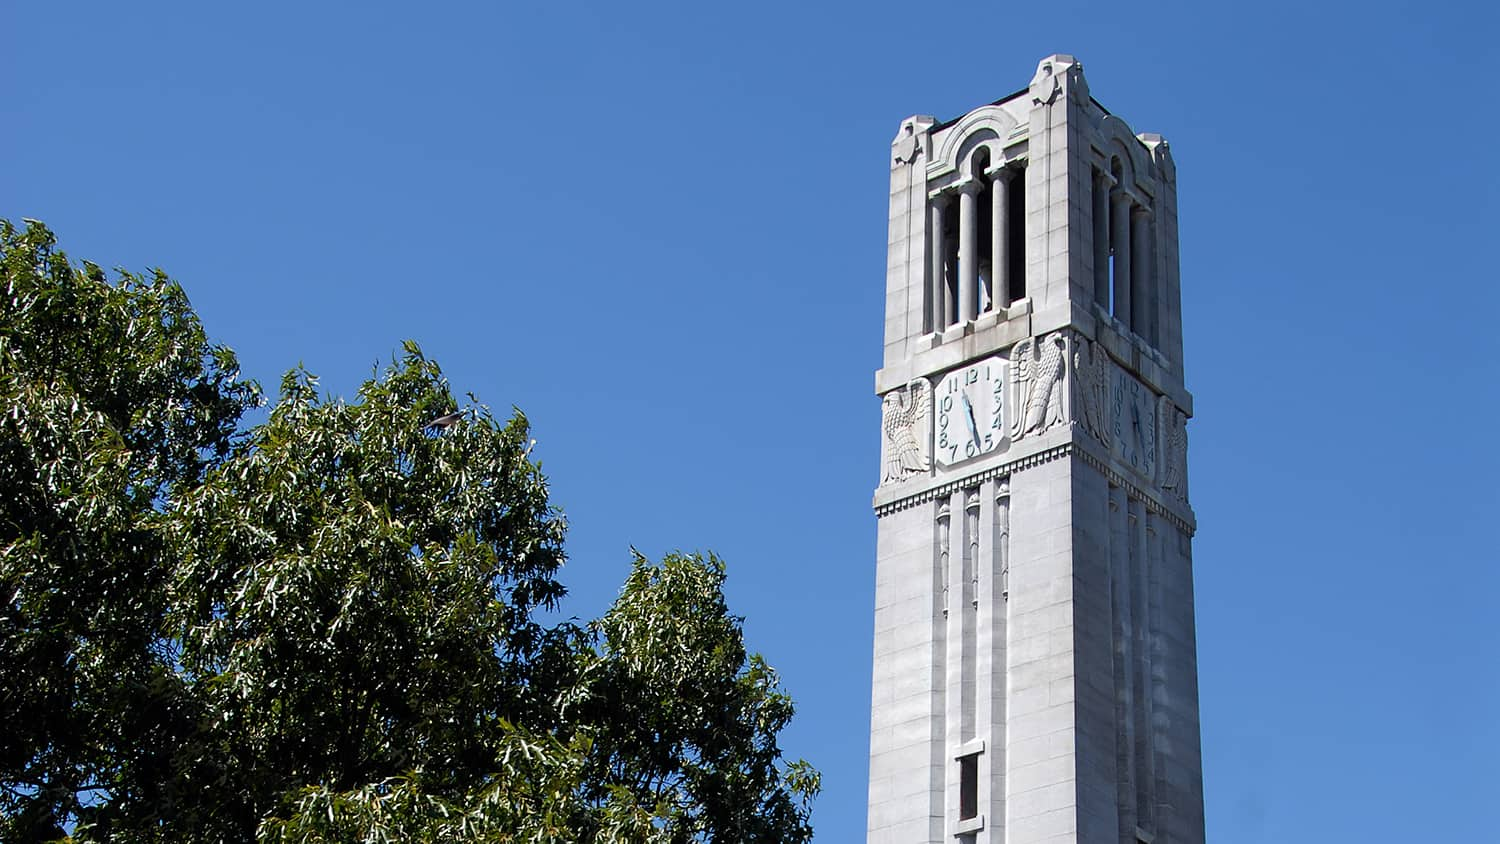 The belltower in front of a blue sky